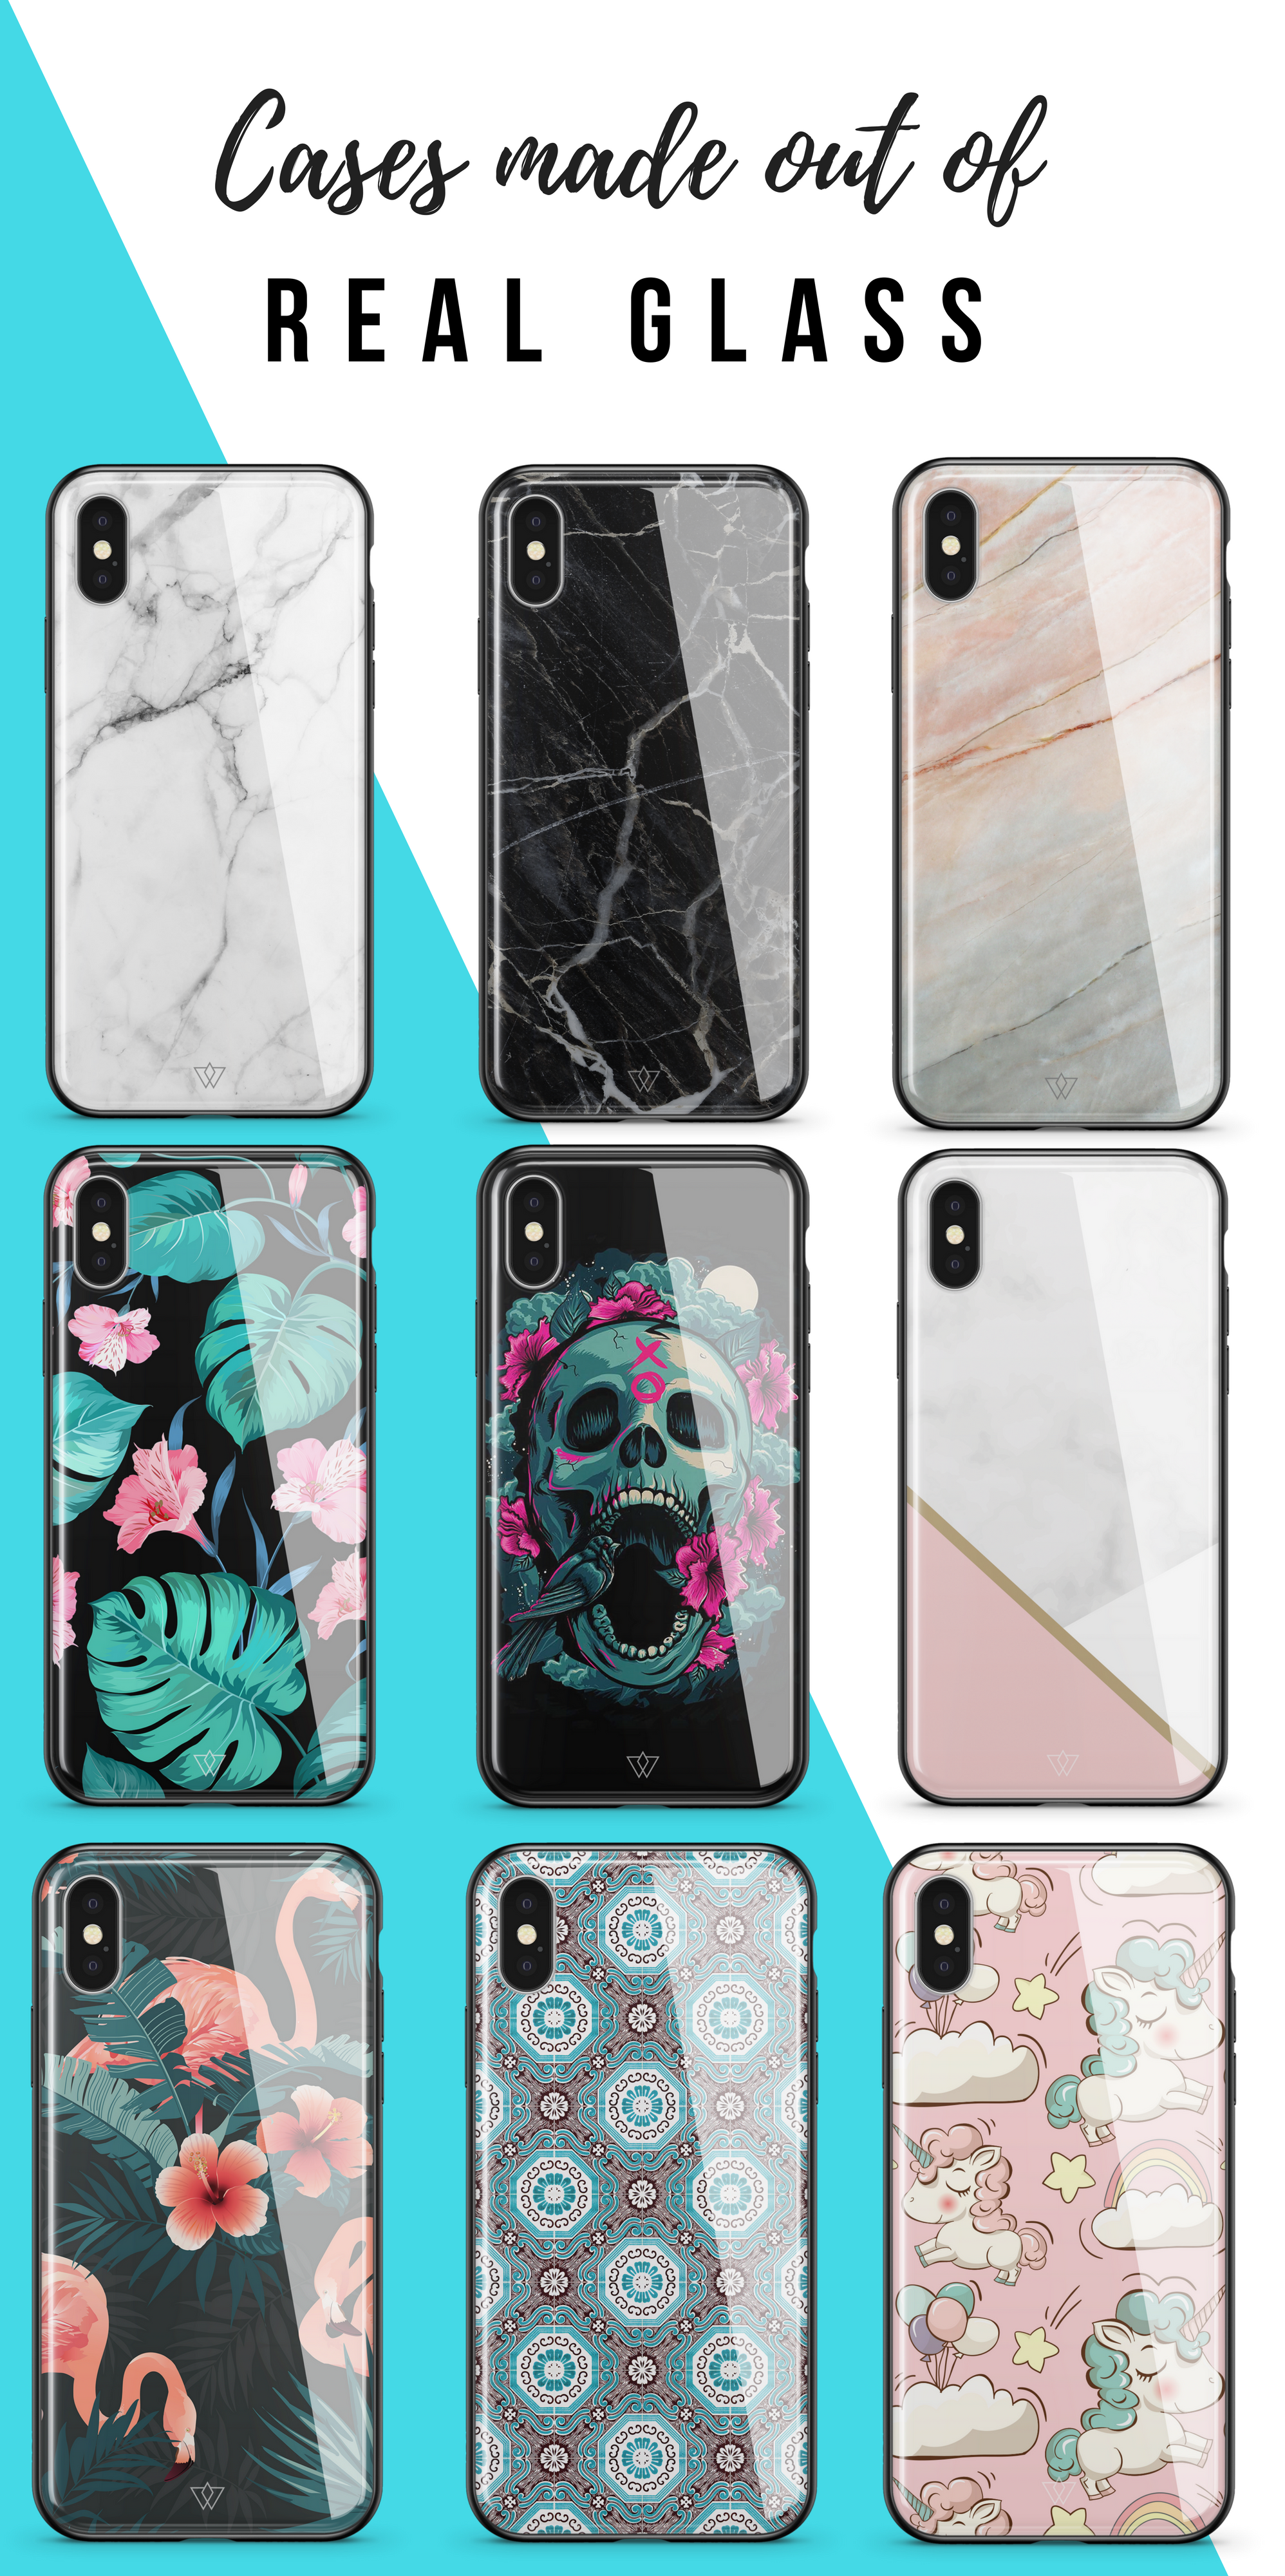 efb689236d0  50% OFF - £19.95  Cases made out of REAL GLASS  Available for All iPhone  Models. Designed in London